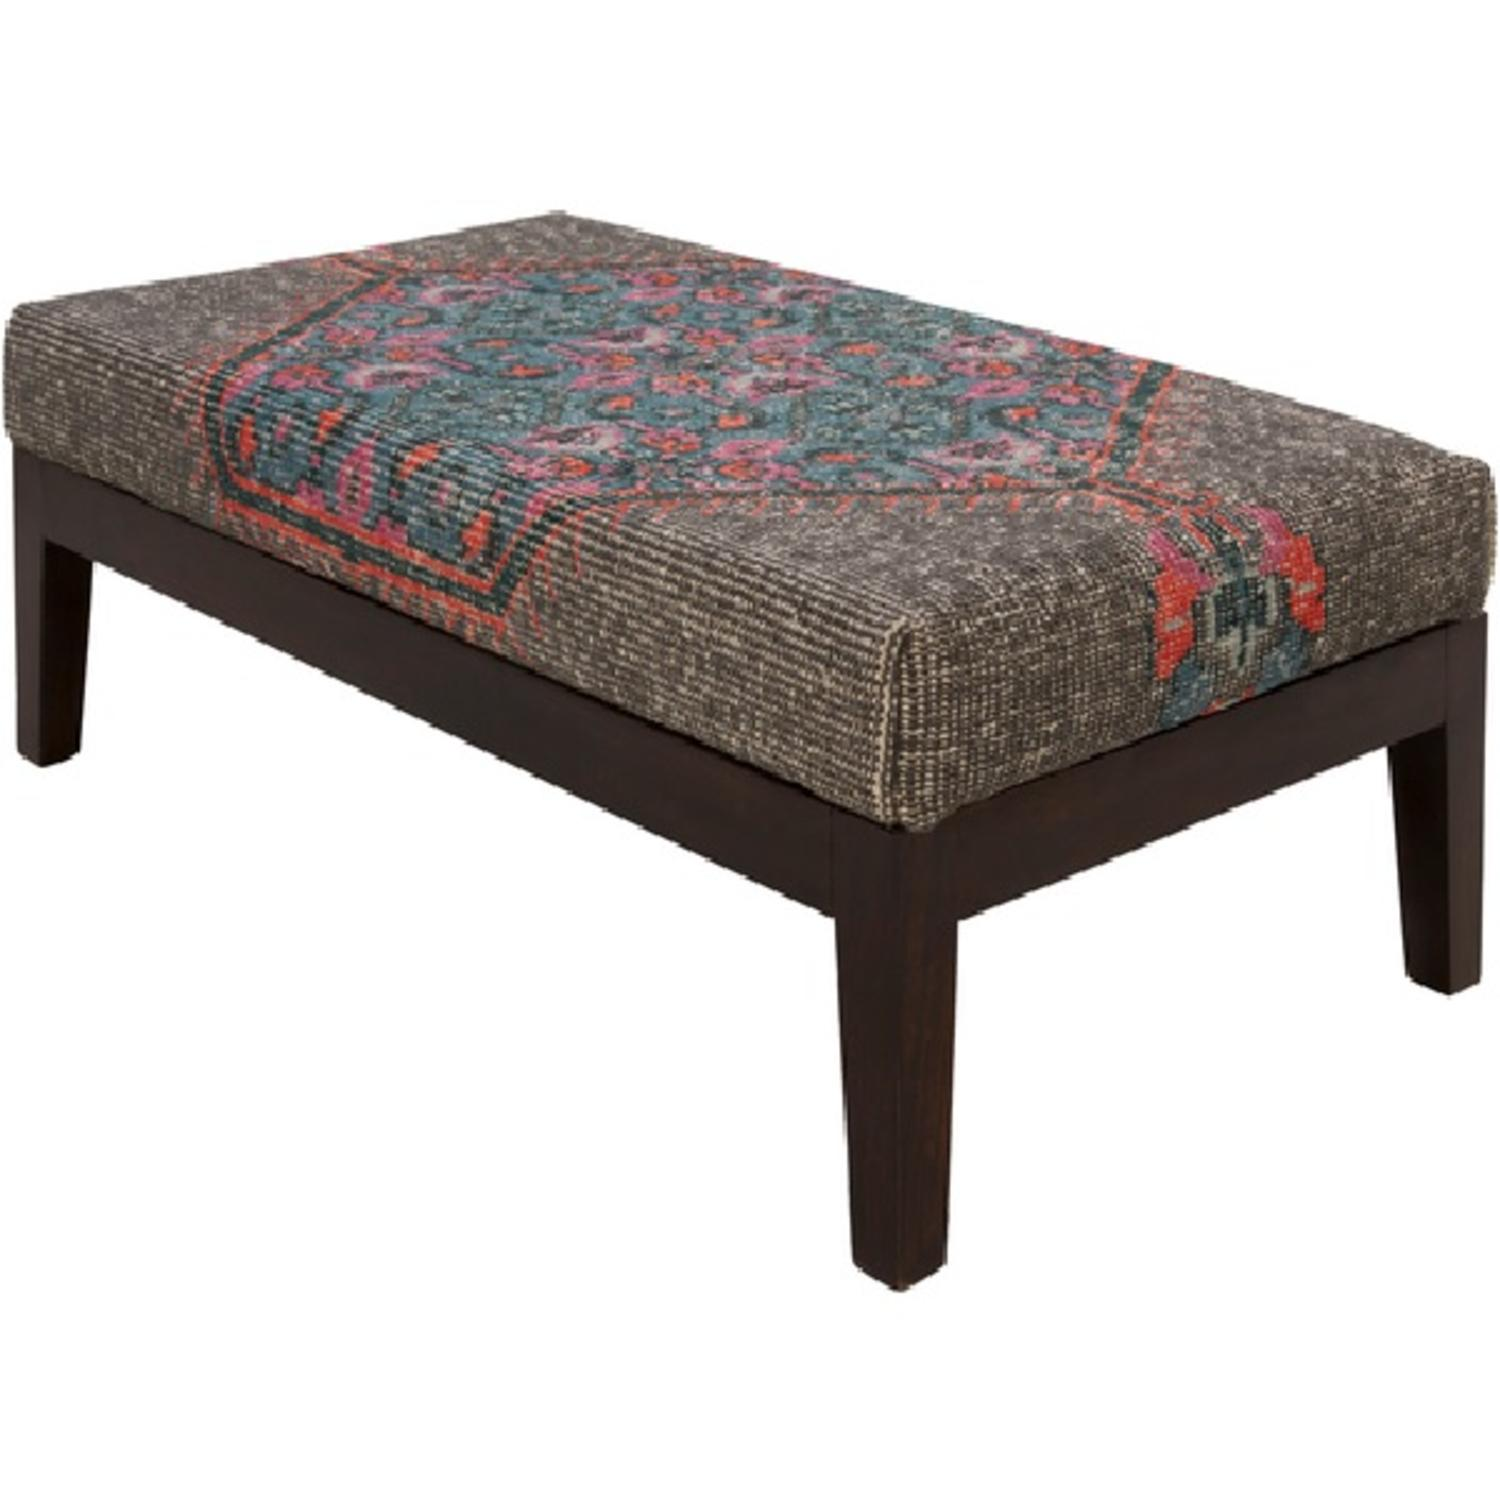 "47"" Zahra Bright Pink and Teal Wool with Dark Stained Wood Legs Decorative Bench"